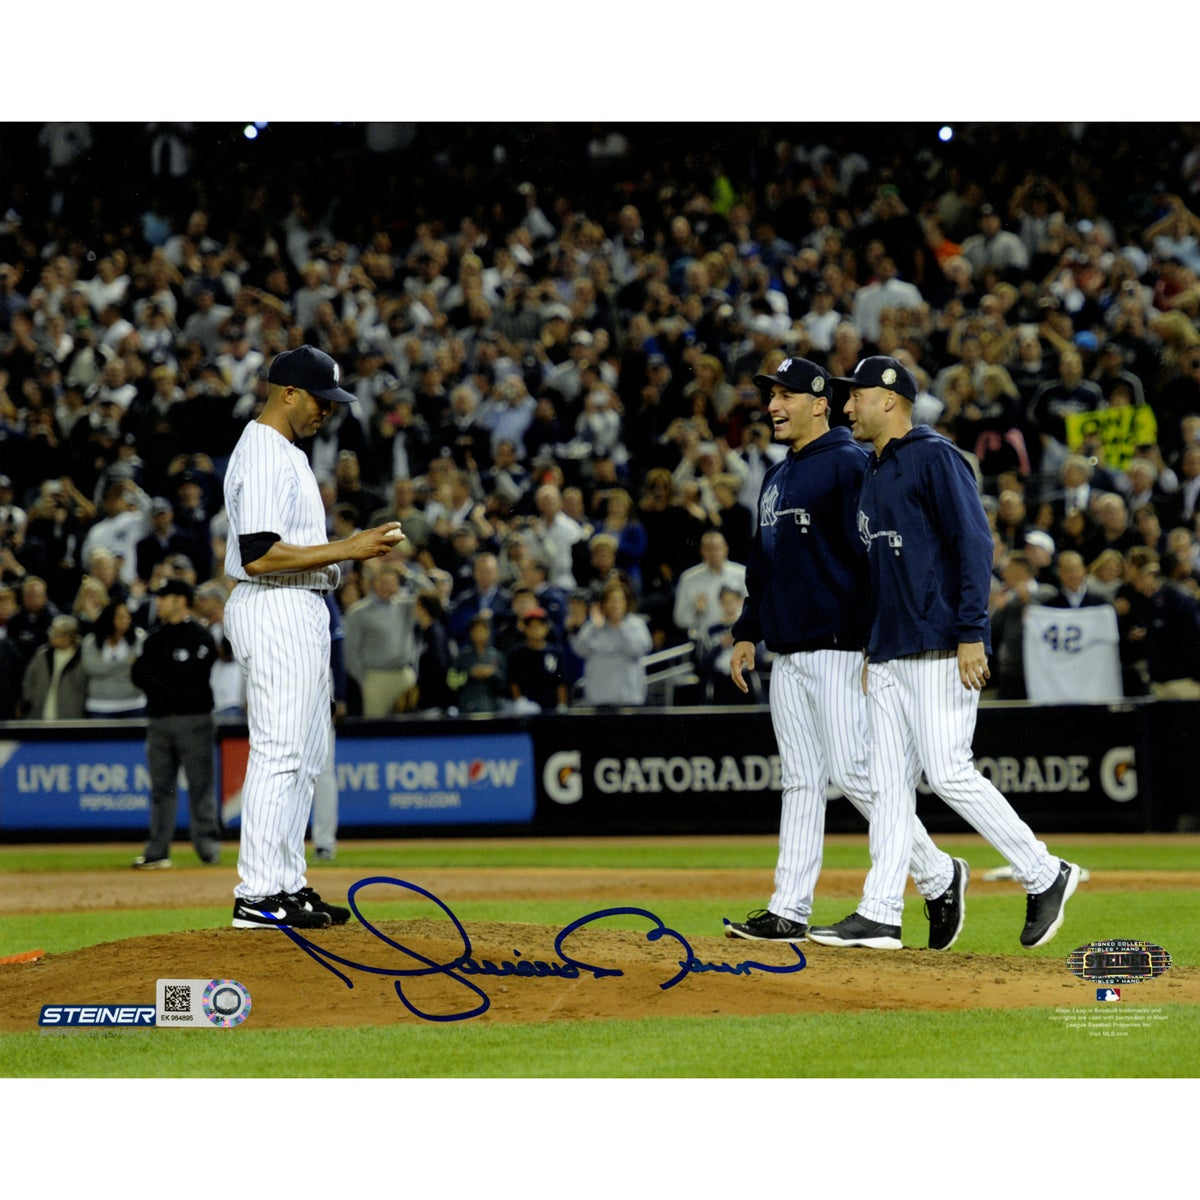 ae327c5d2bd Shop Mariano Rivera Mound w Pettitte   Jeter At Yankee Stadium Signed 8x10  Photo (MLB Auth) - Free Shipping Today - Overstock - 11205658